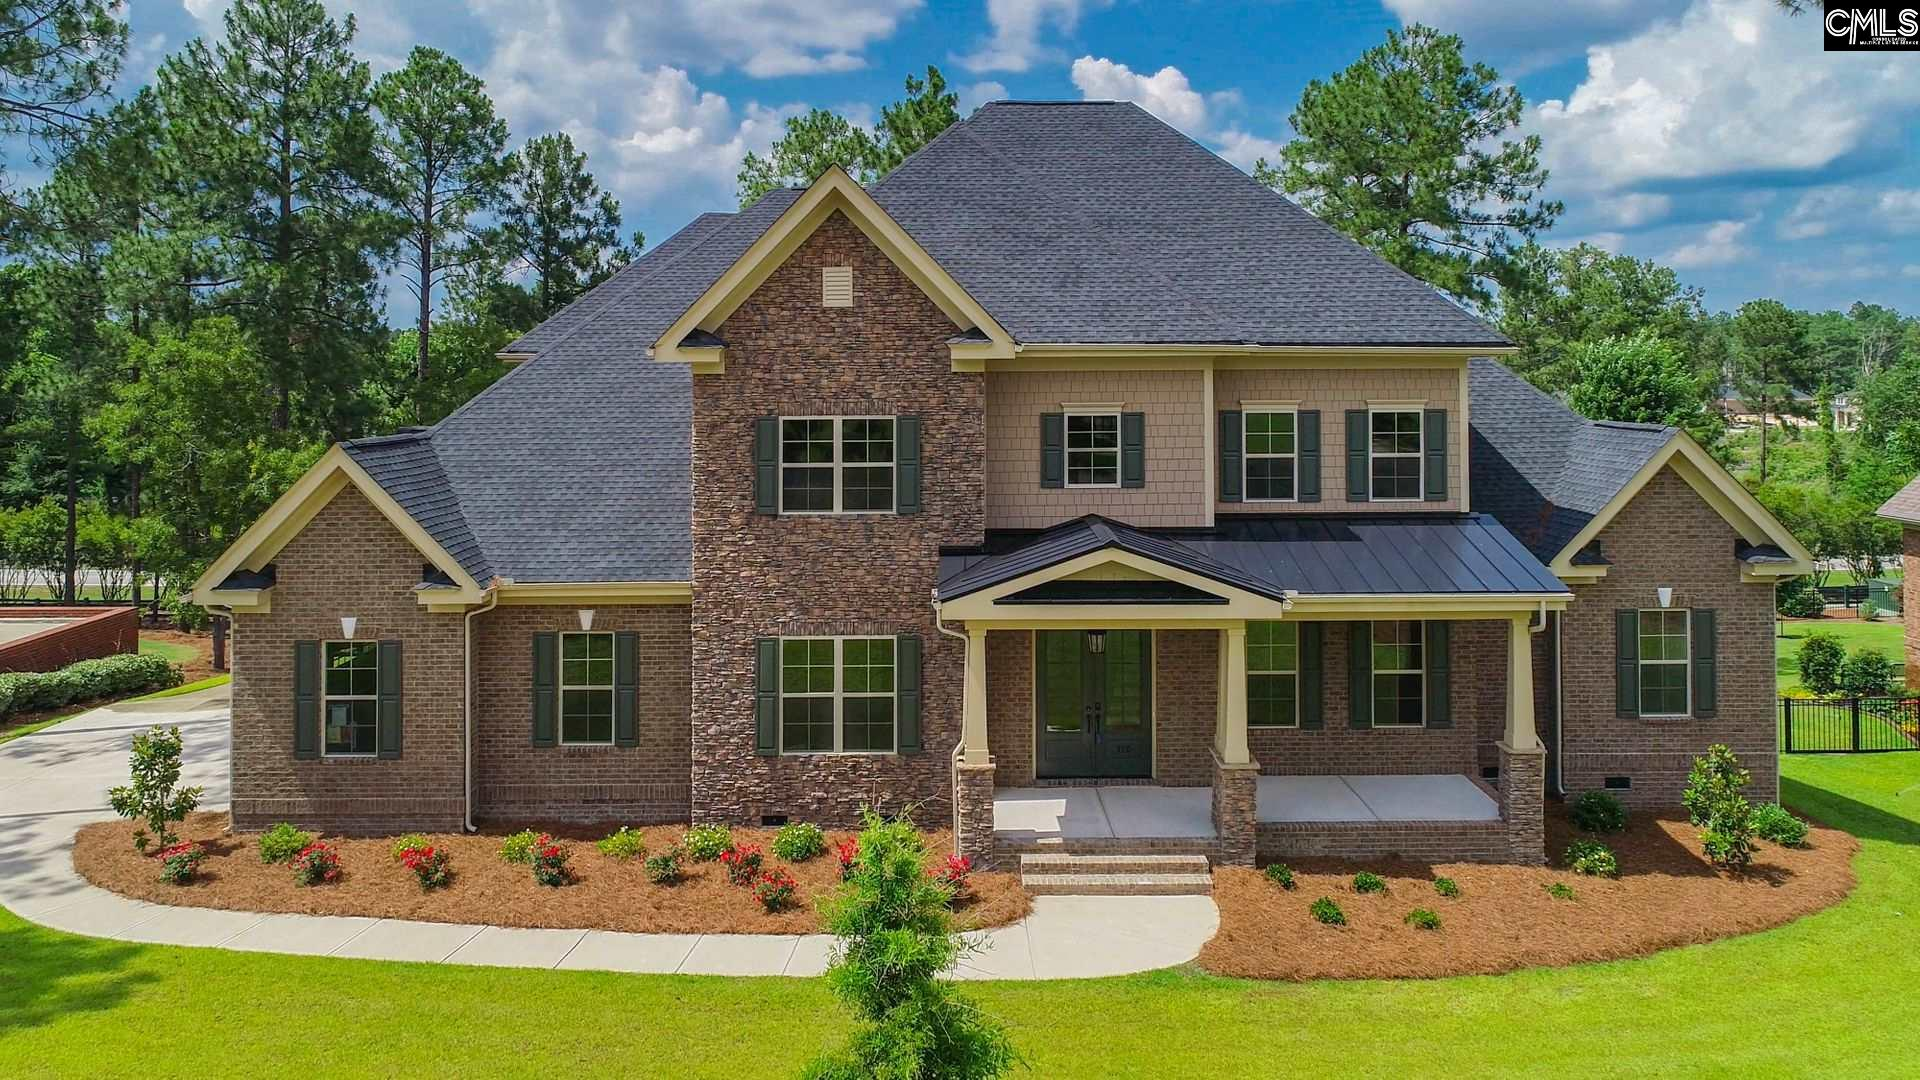 Elgin sc homes for sale page 9 for Columbia sc custom home builders